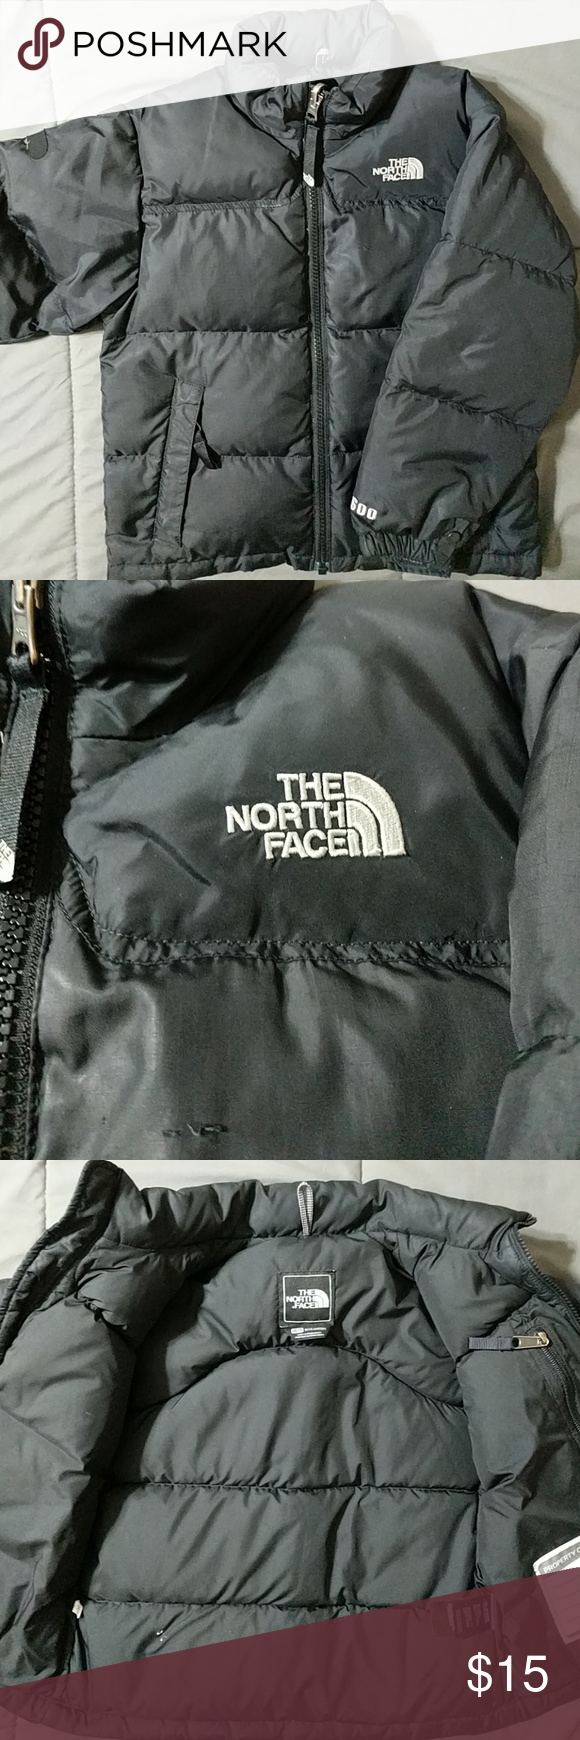 North Face Down Jacket Black Xs 5t The North Face Down Jacket Black Puffer Jacket [ 1740 x 580 Pixel ]